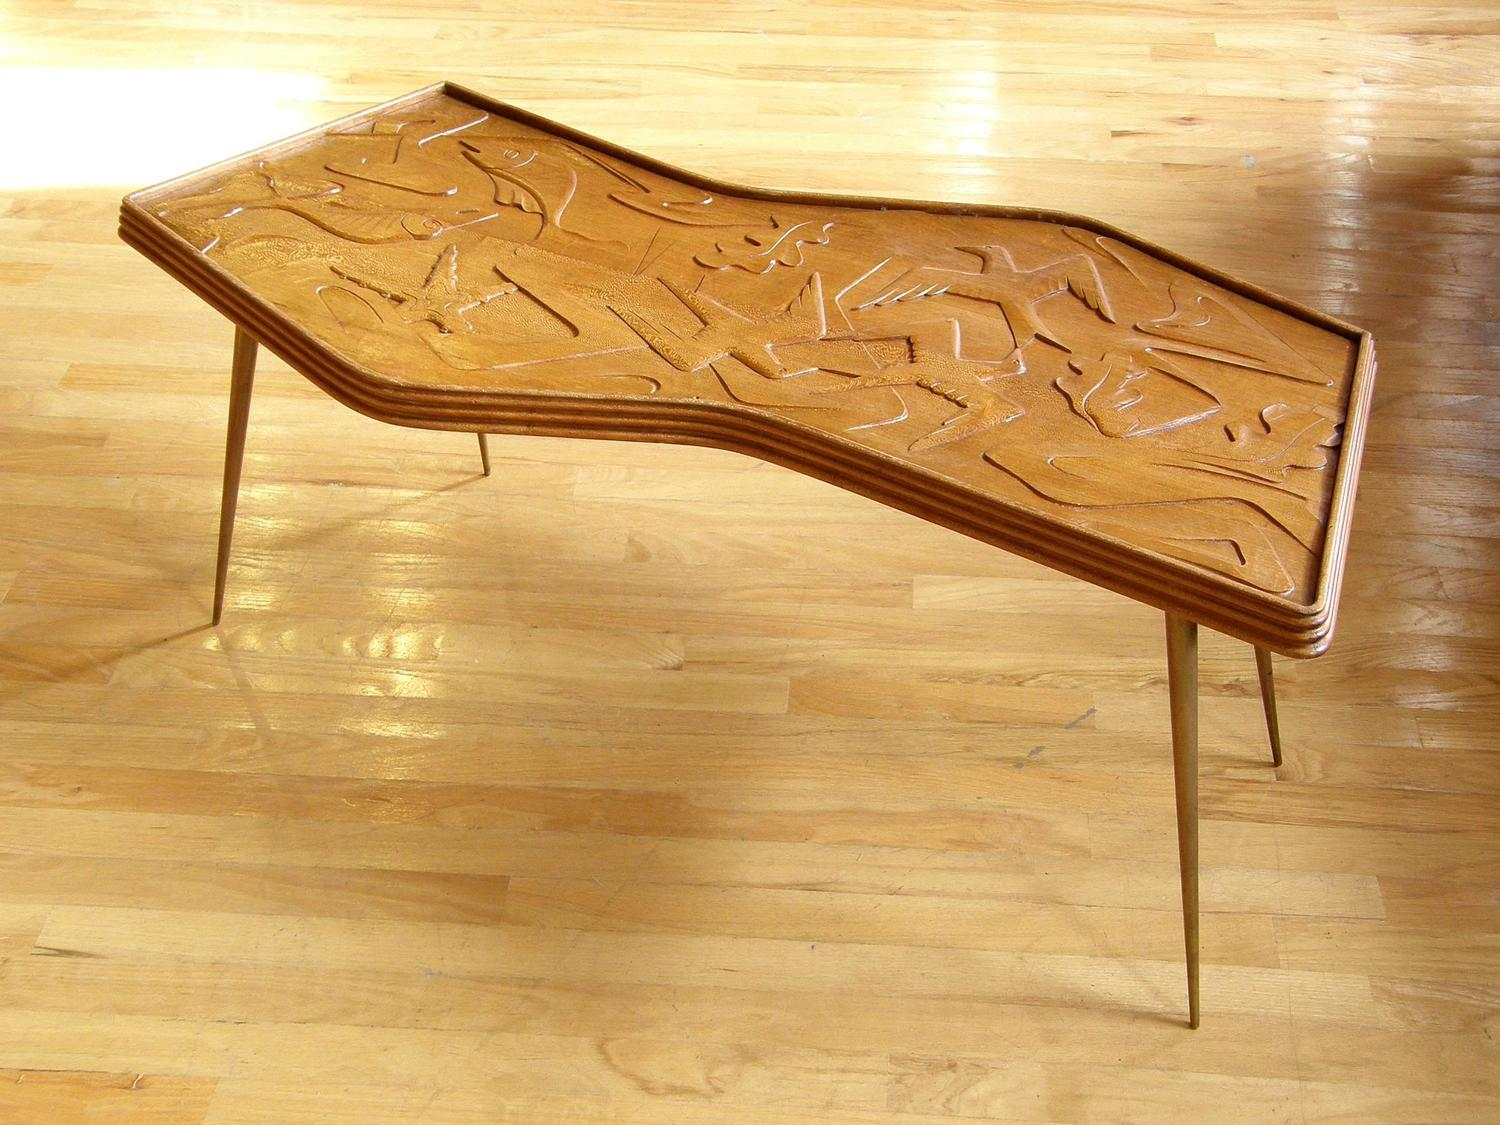 Zigzag Coffee Table With Carved Birds And Fish For Sale At 1stdibs